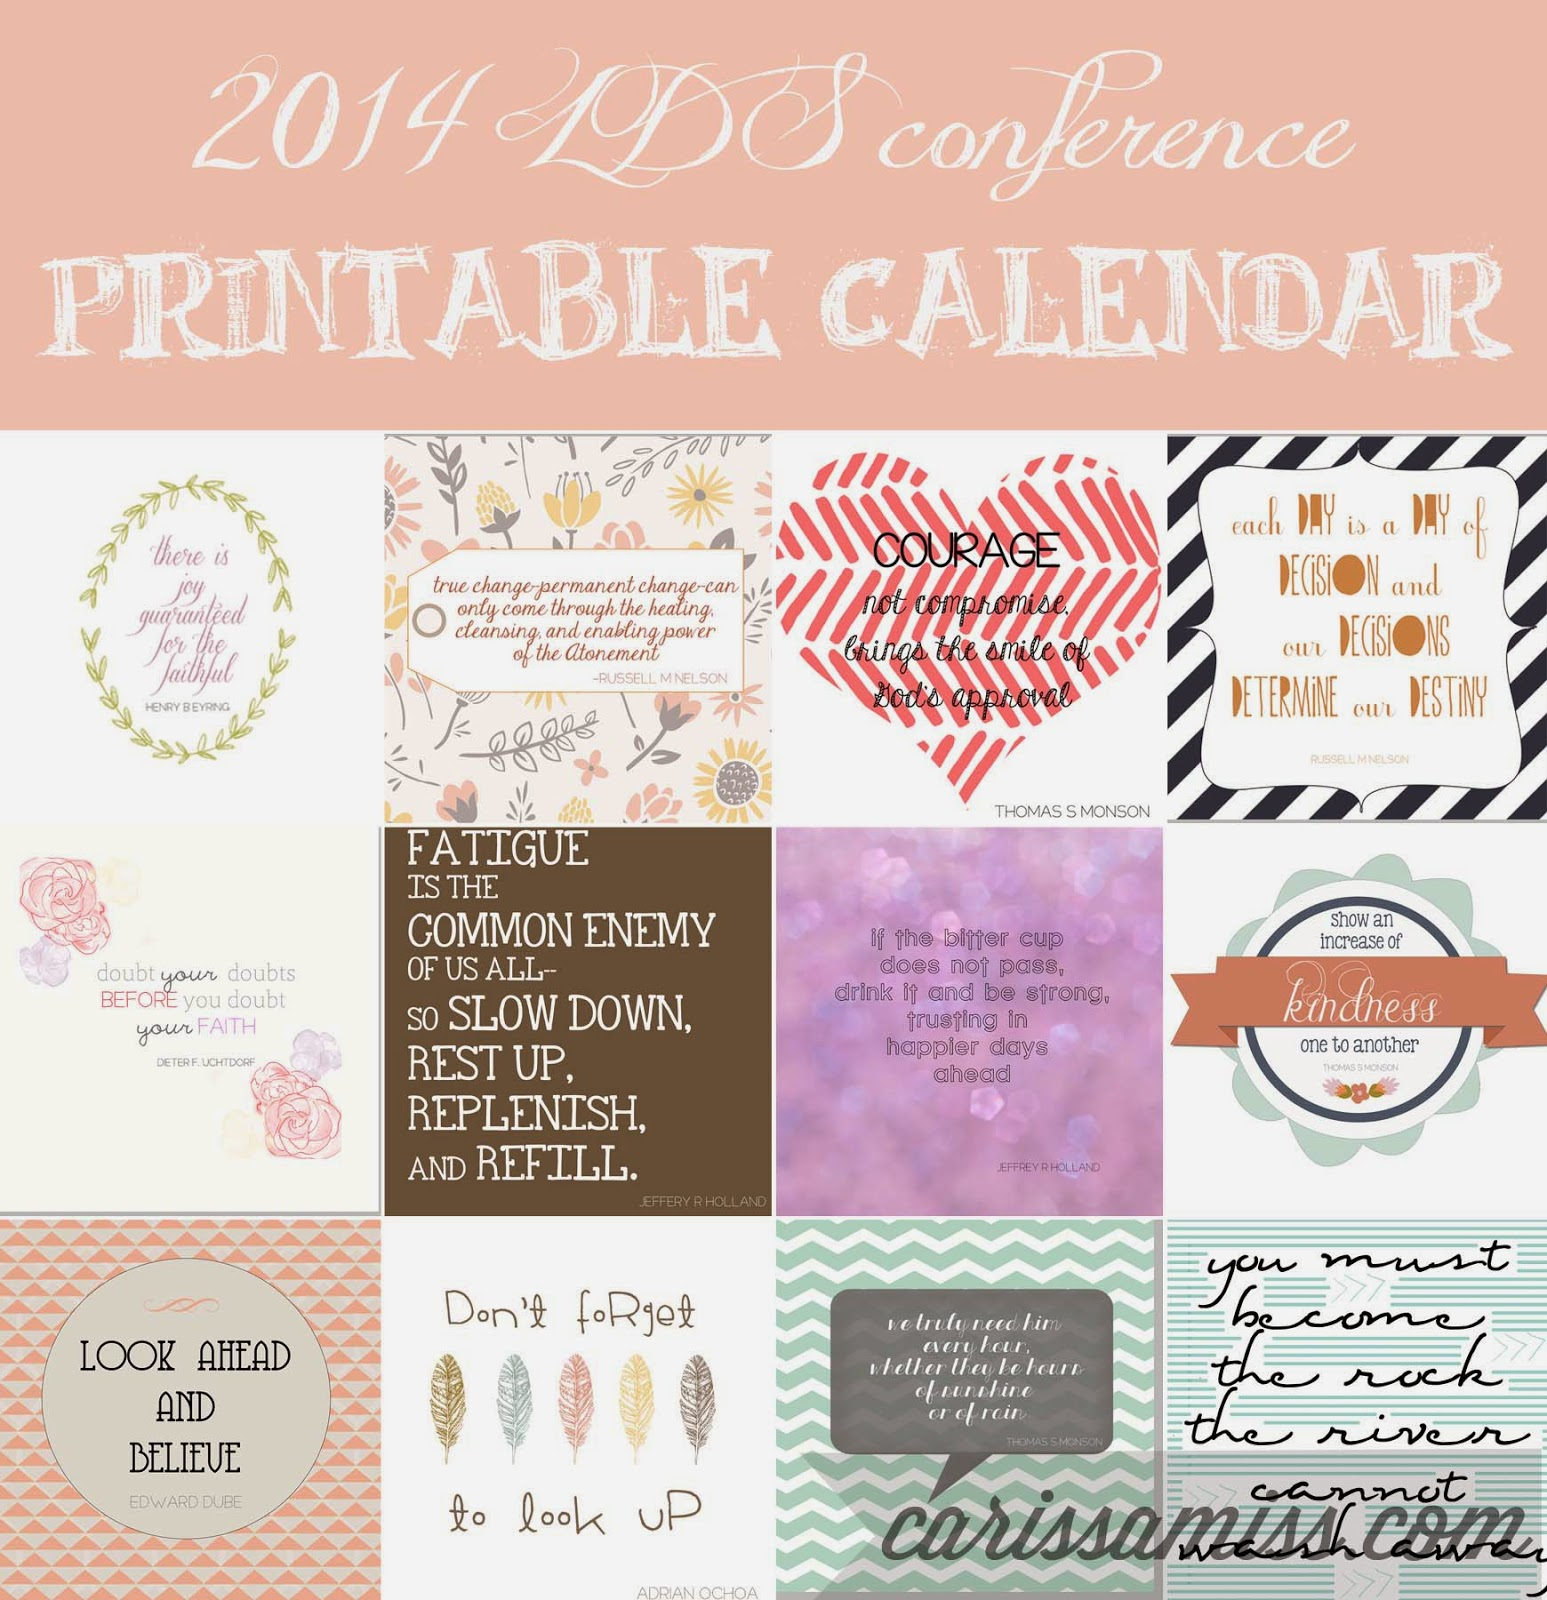 Carissa Miss: Project Life Conference Printable